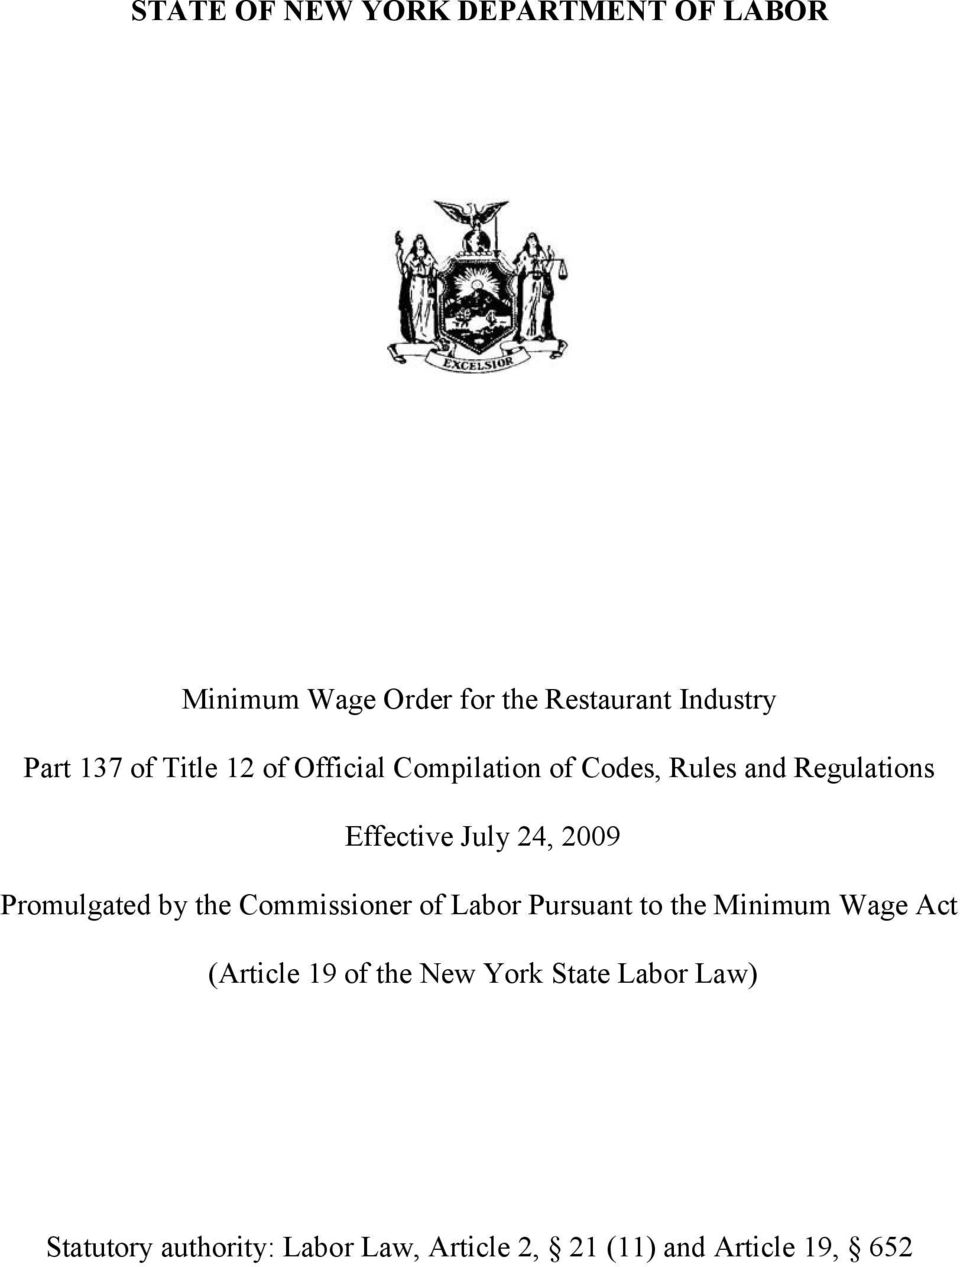 Promulgated by the Commissioner of Labor Pursuant to the Minimum Wage Act (Article 19 of the